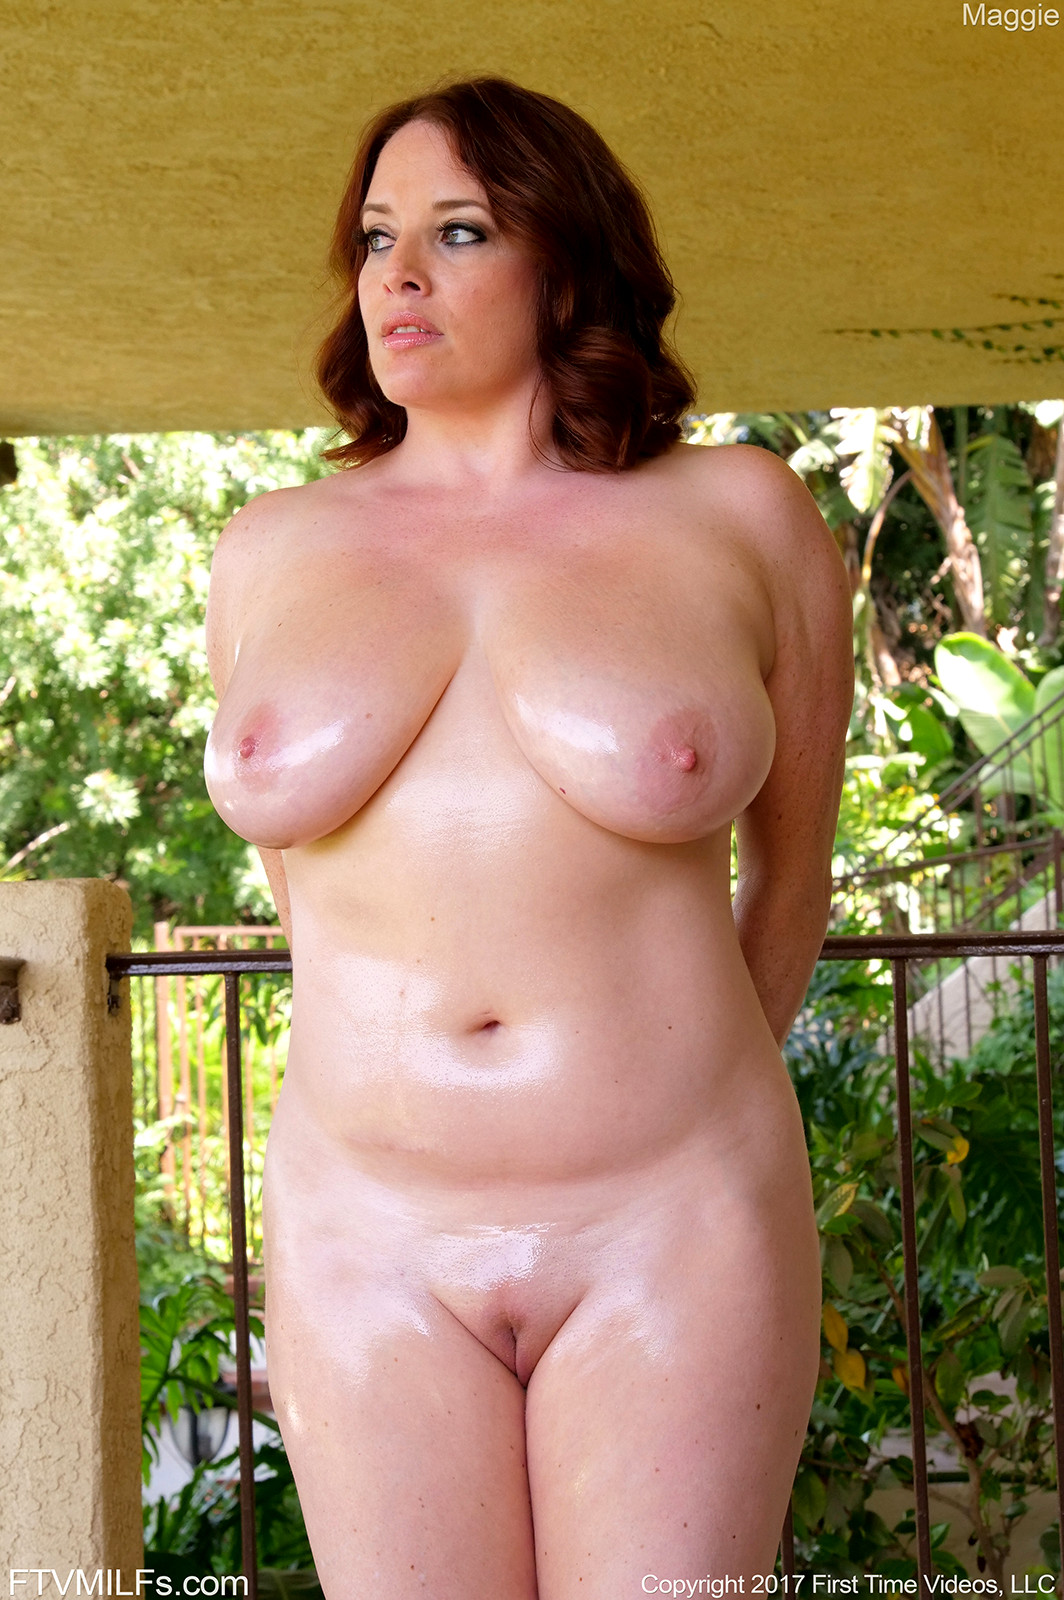 Babe Today Ftv Milfs Maggie Green Naked Mature Cutie Mobile Porn Pics-5707